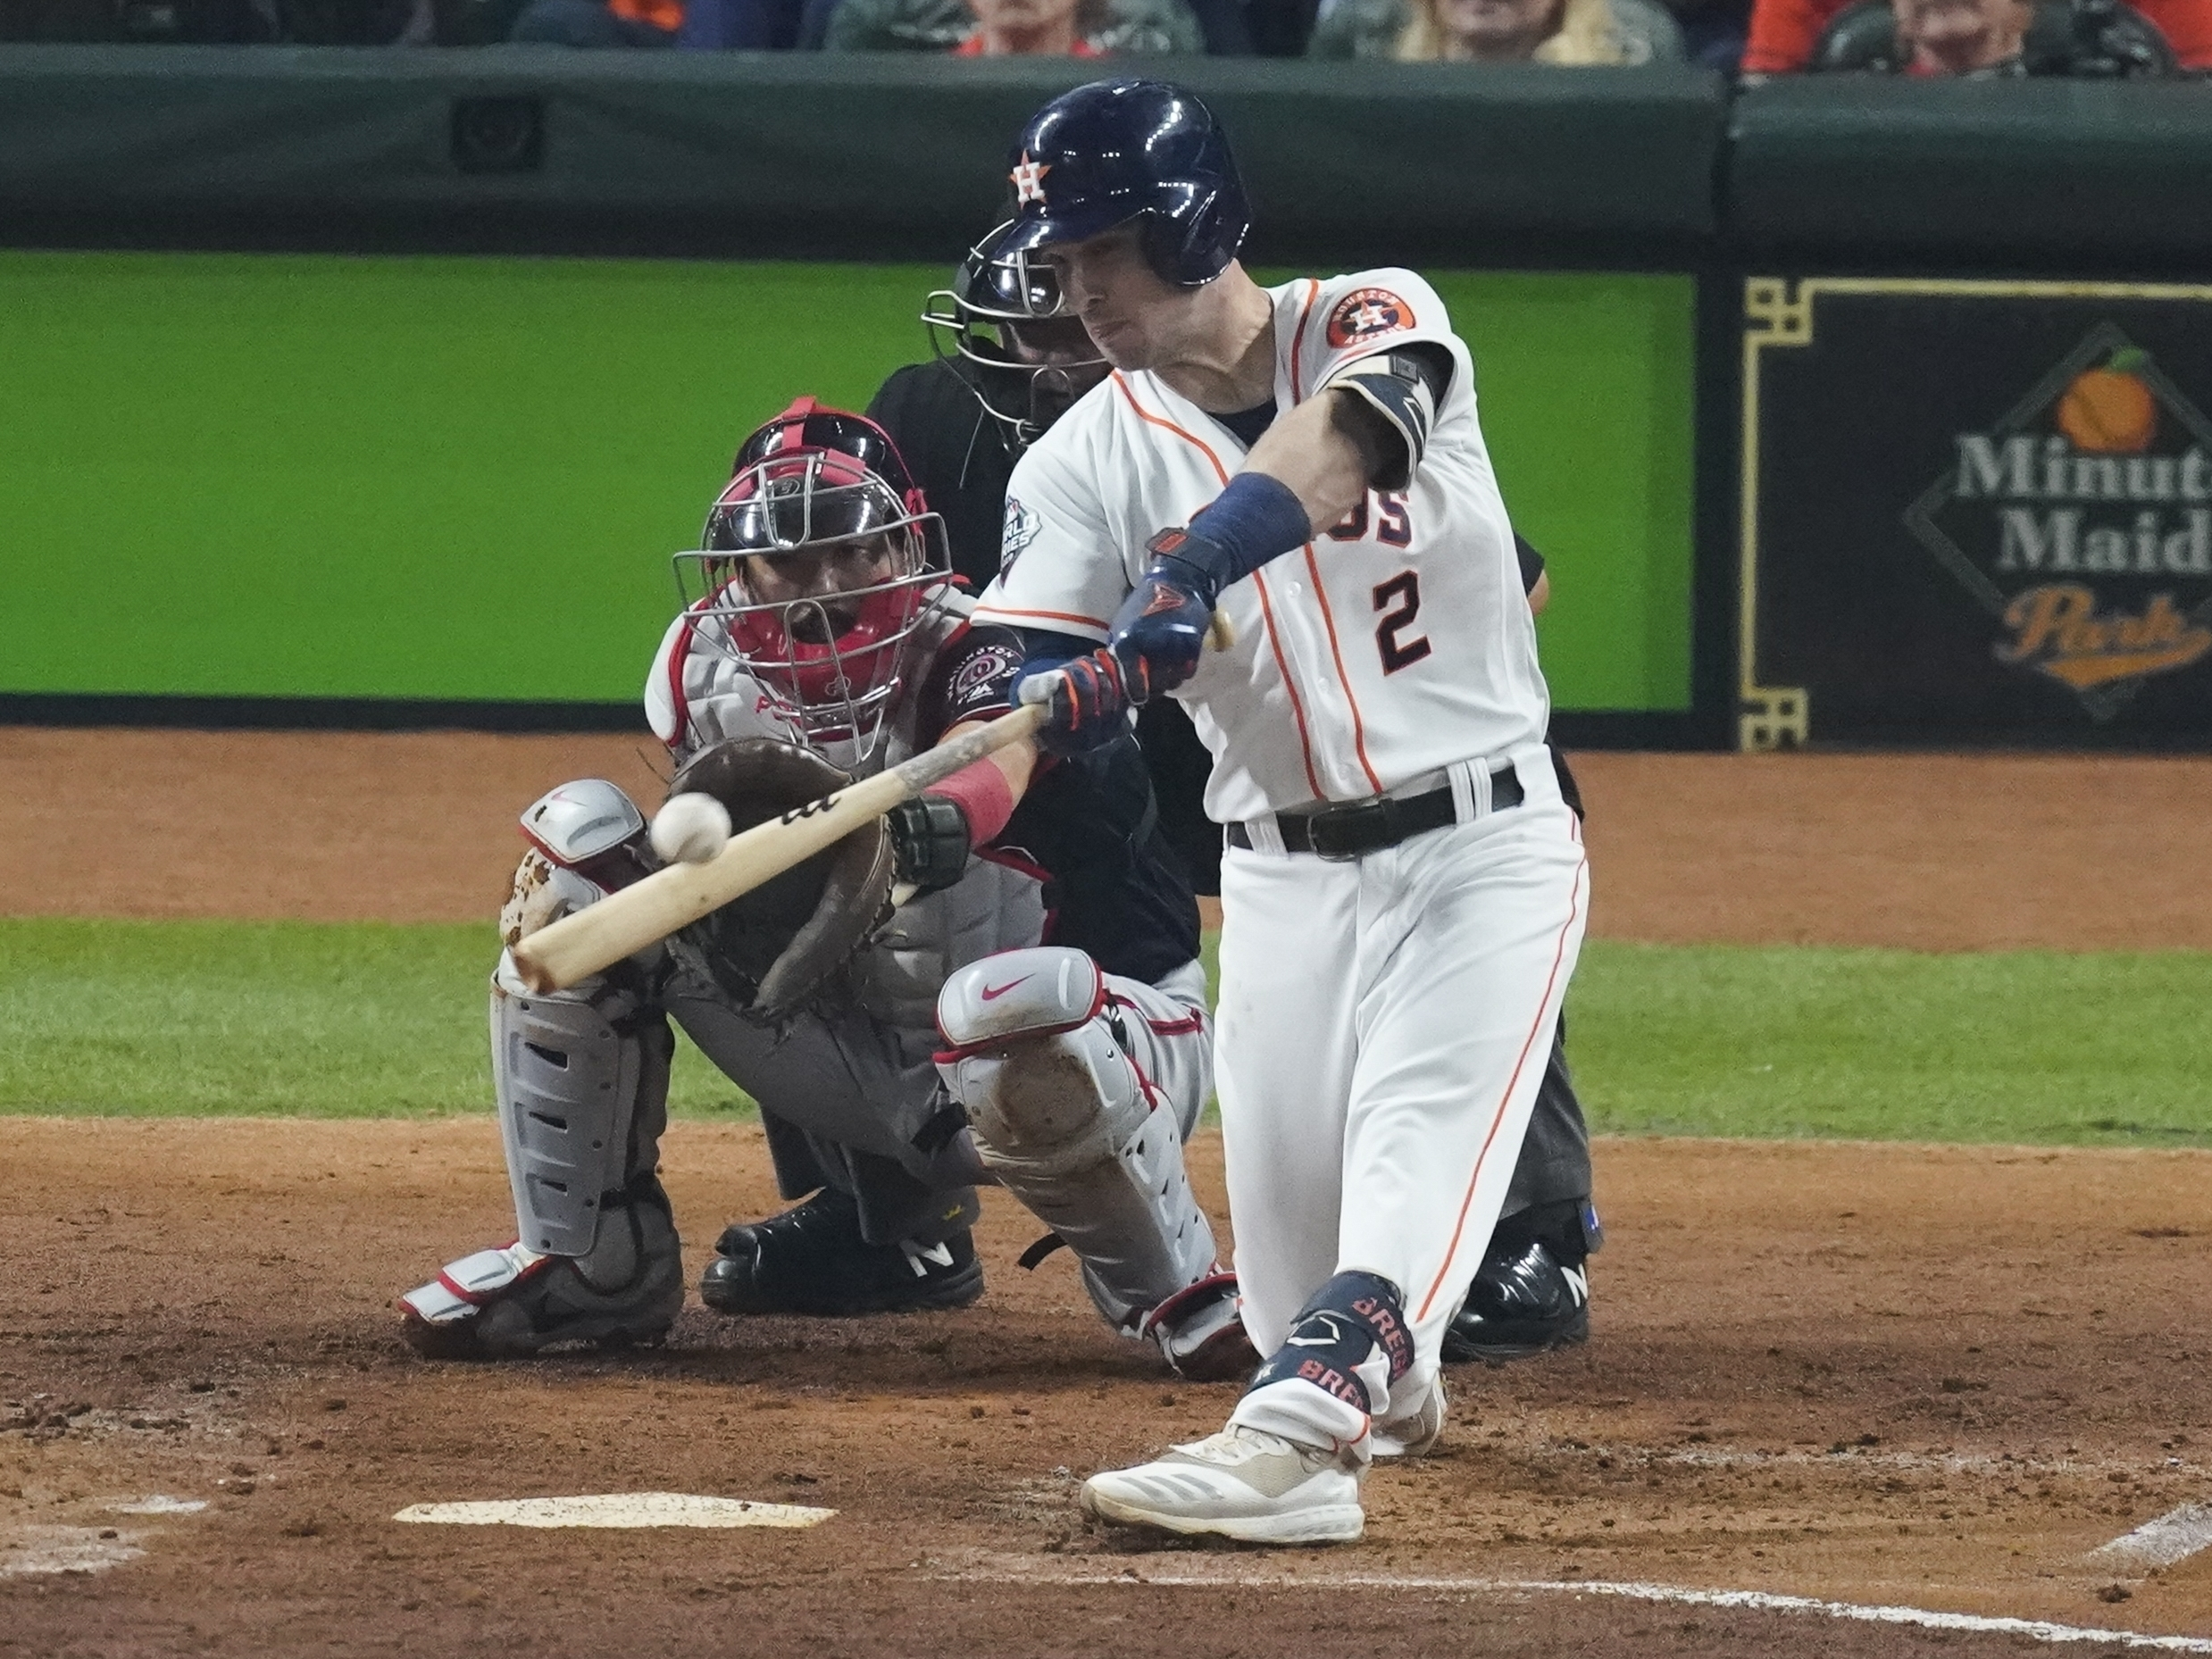 Nationals And Astros Tied 2-2 In Game 2 Of The 2019 World Series